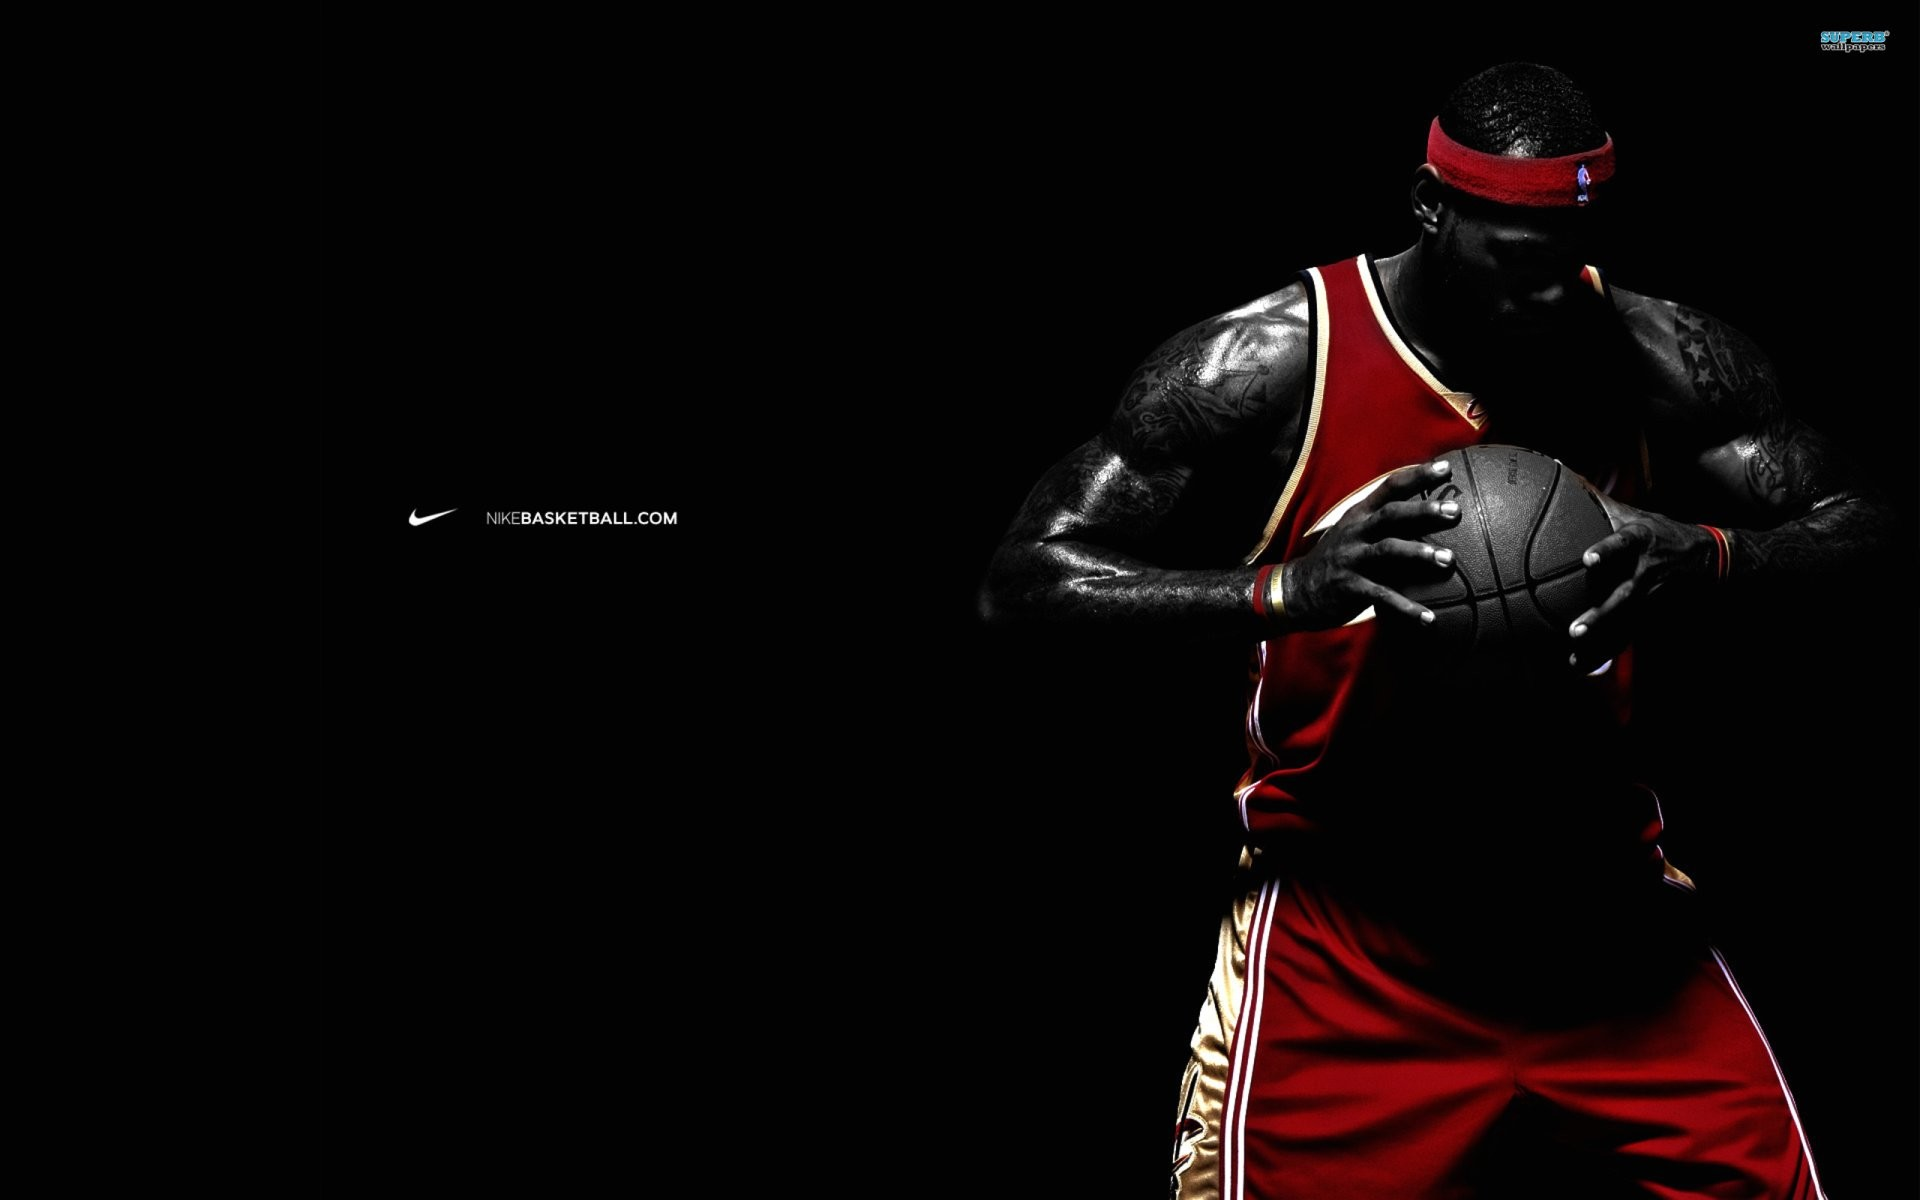 Explore Sports Wallpapers and more!